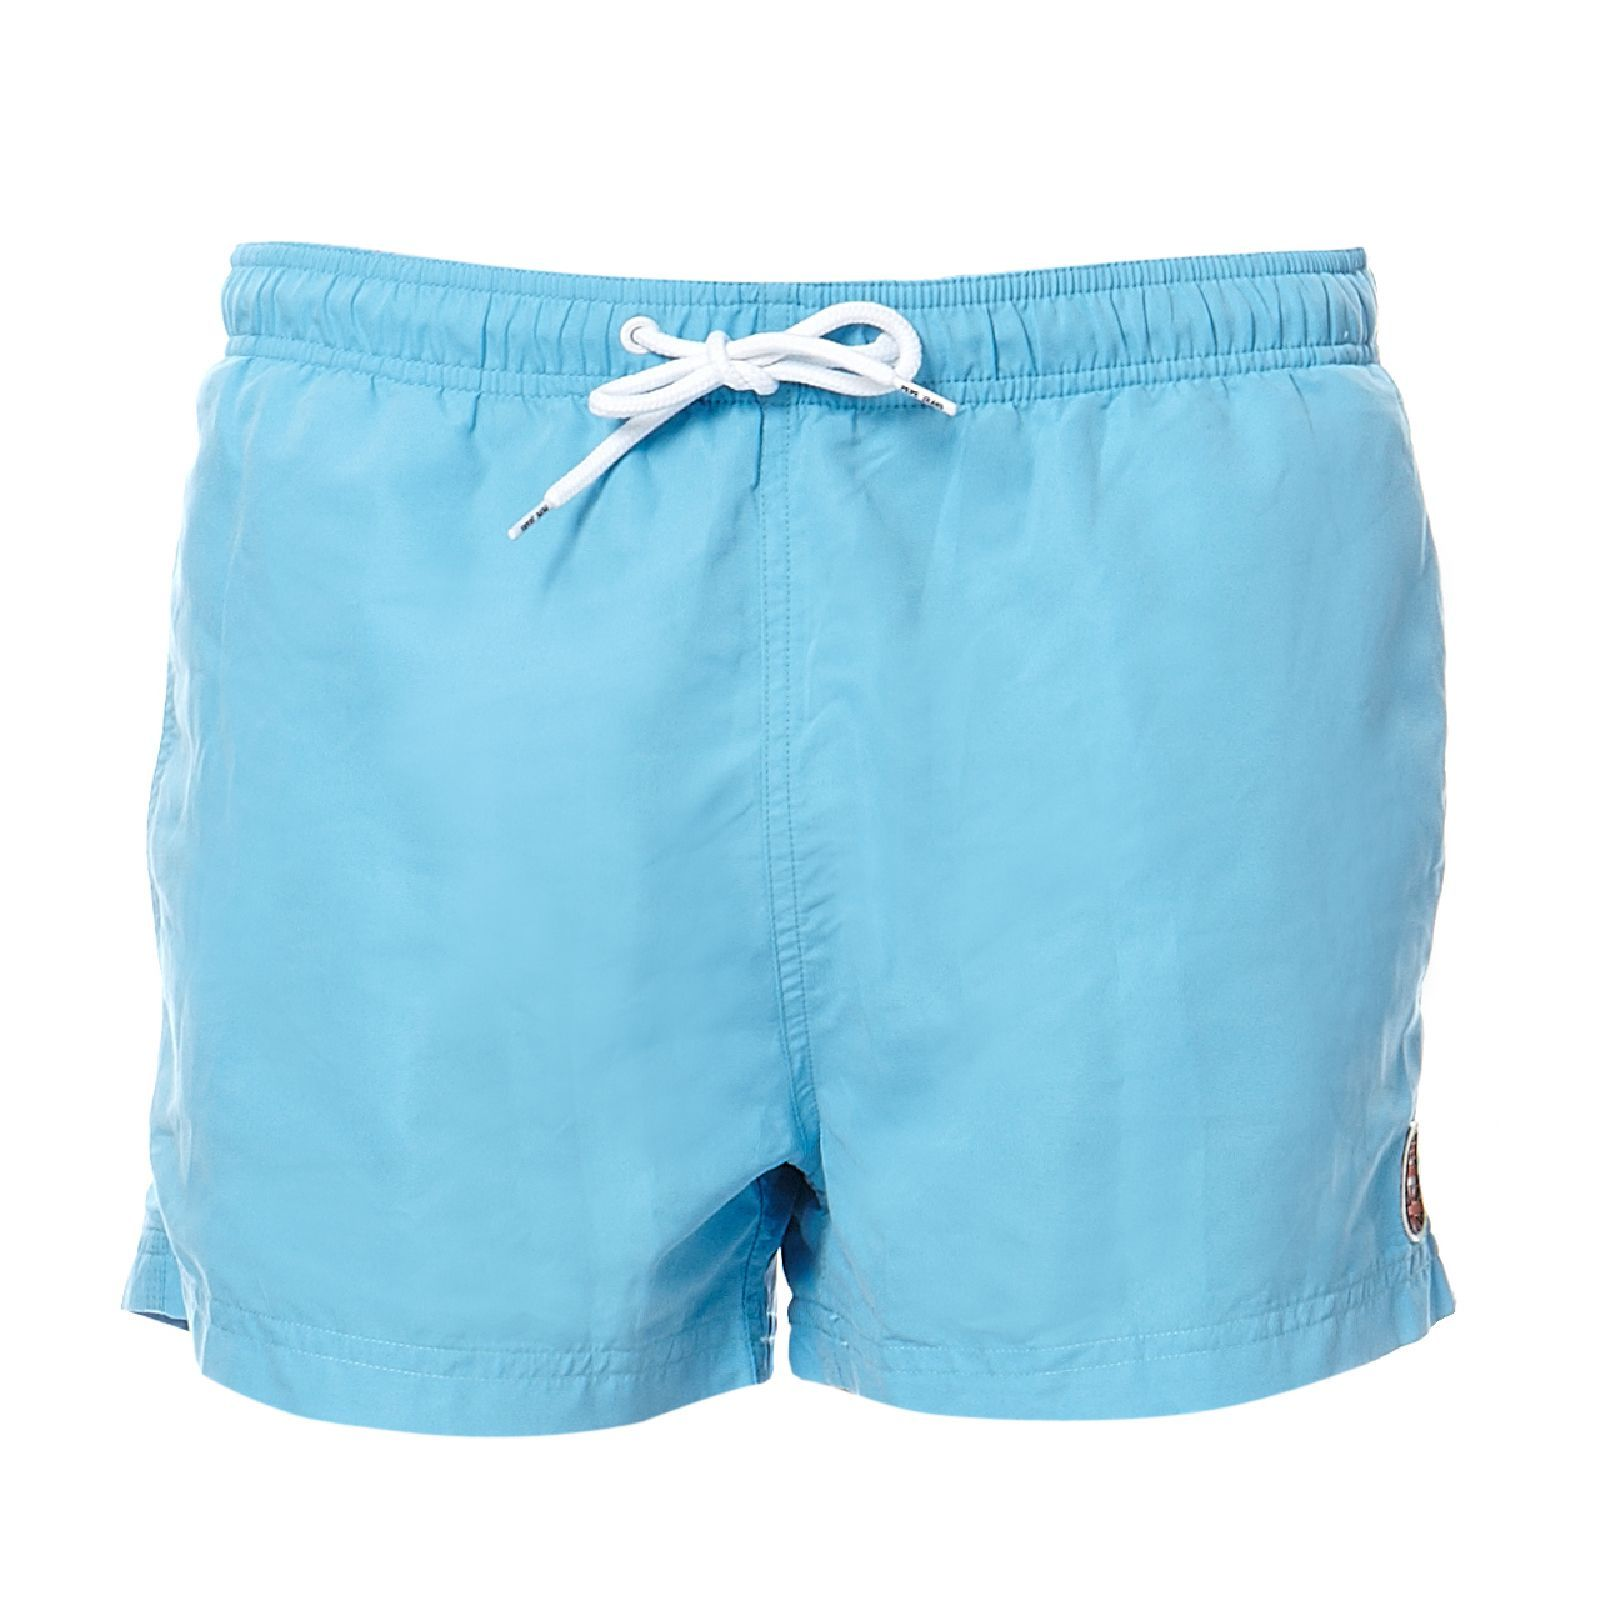 Pepe Jeans London Waters - Short de bain - bleu ciel